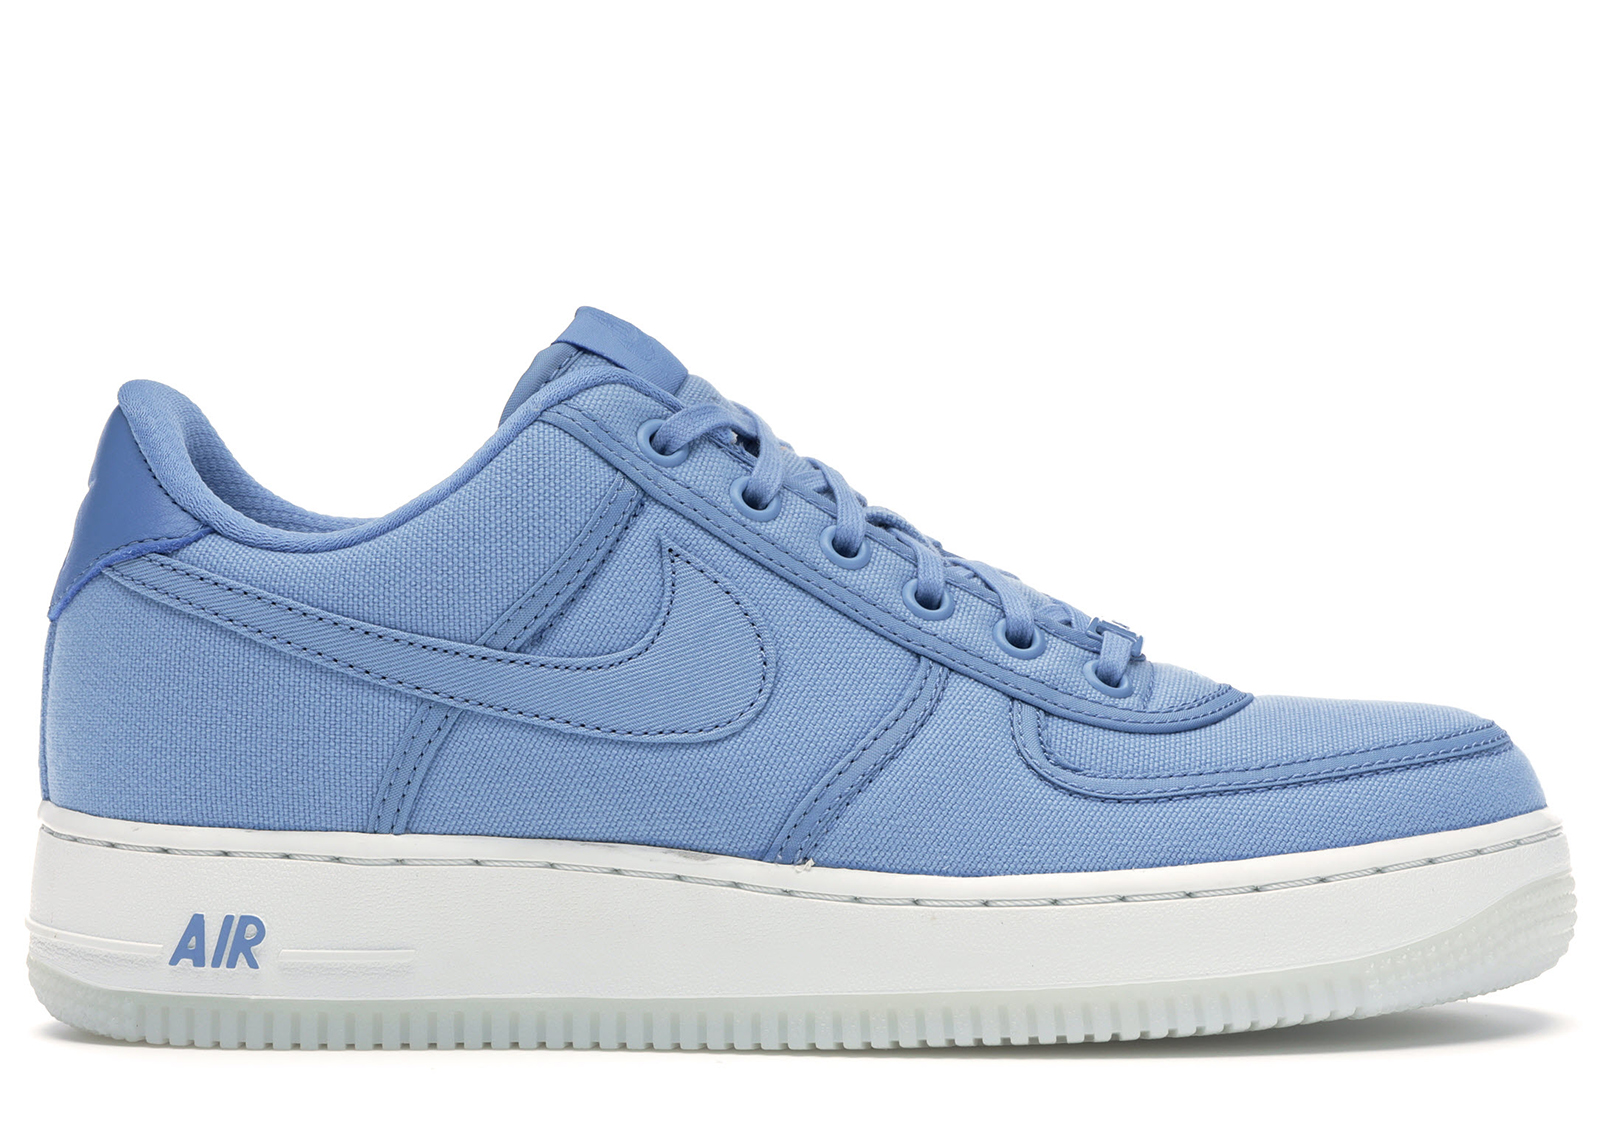 Nike Air Force 1 Low Canvas December